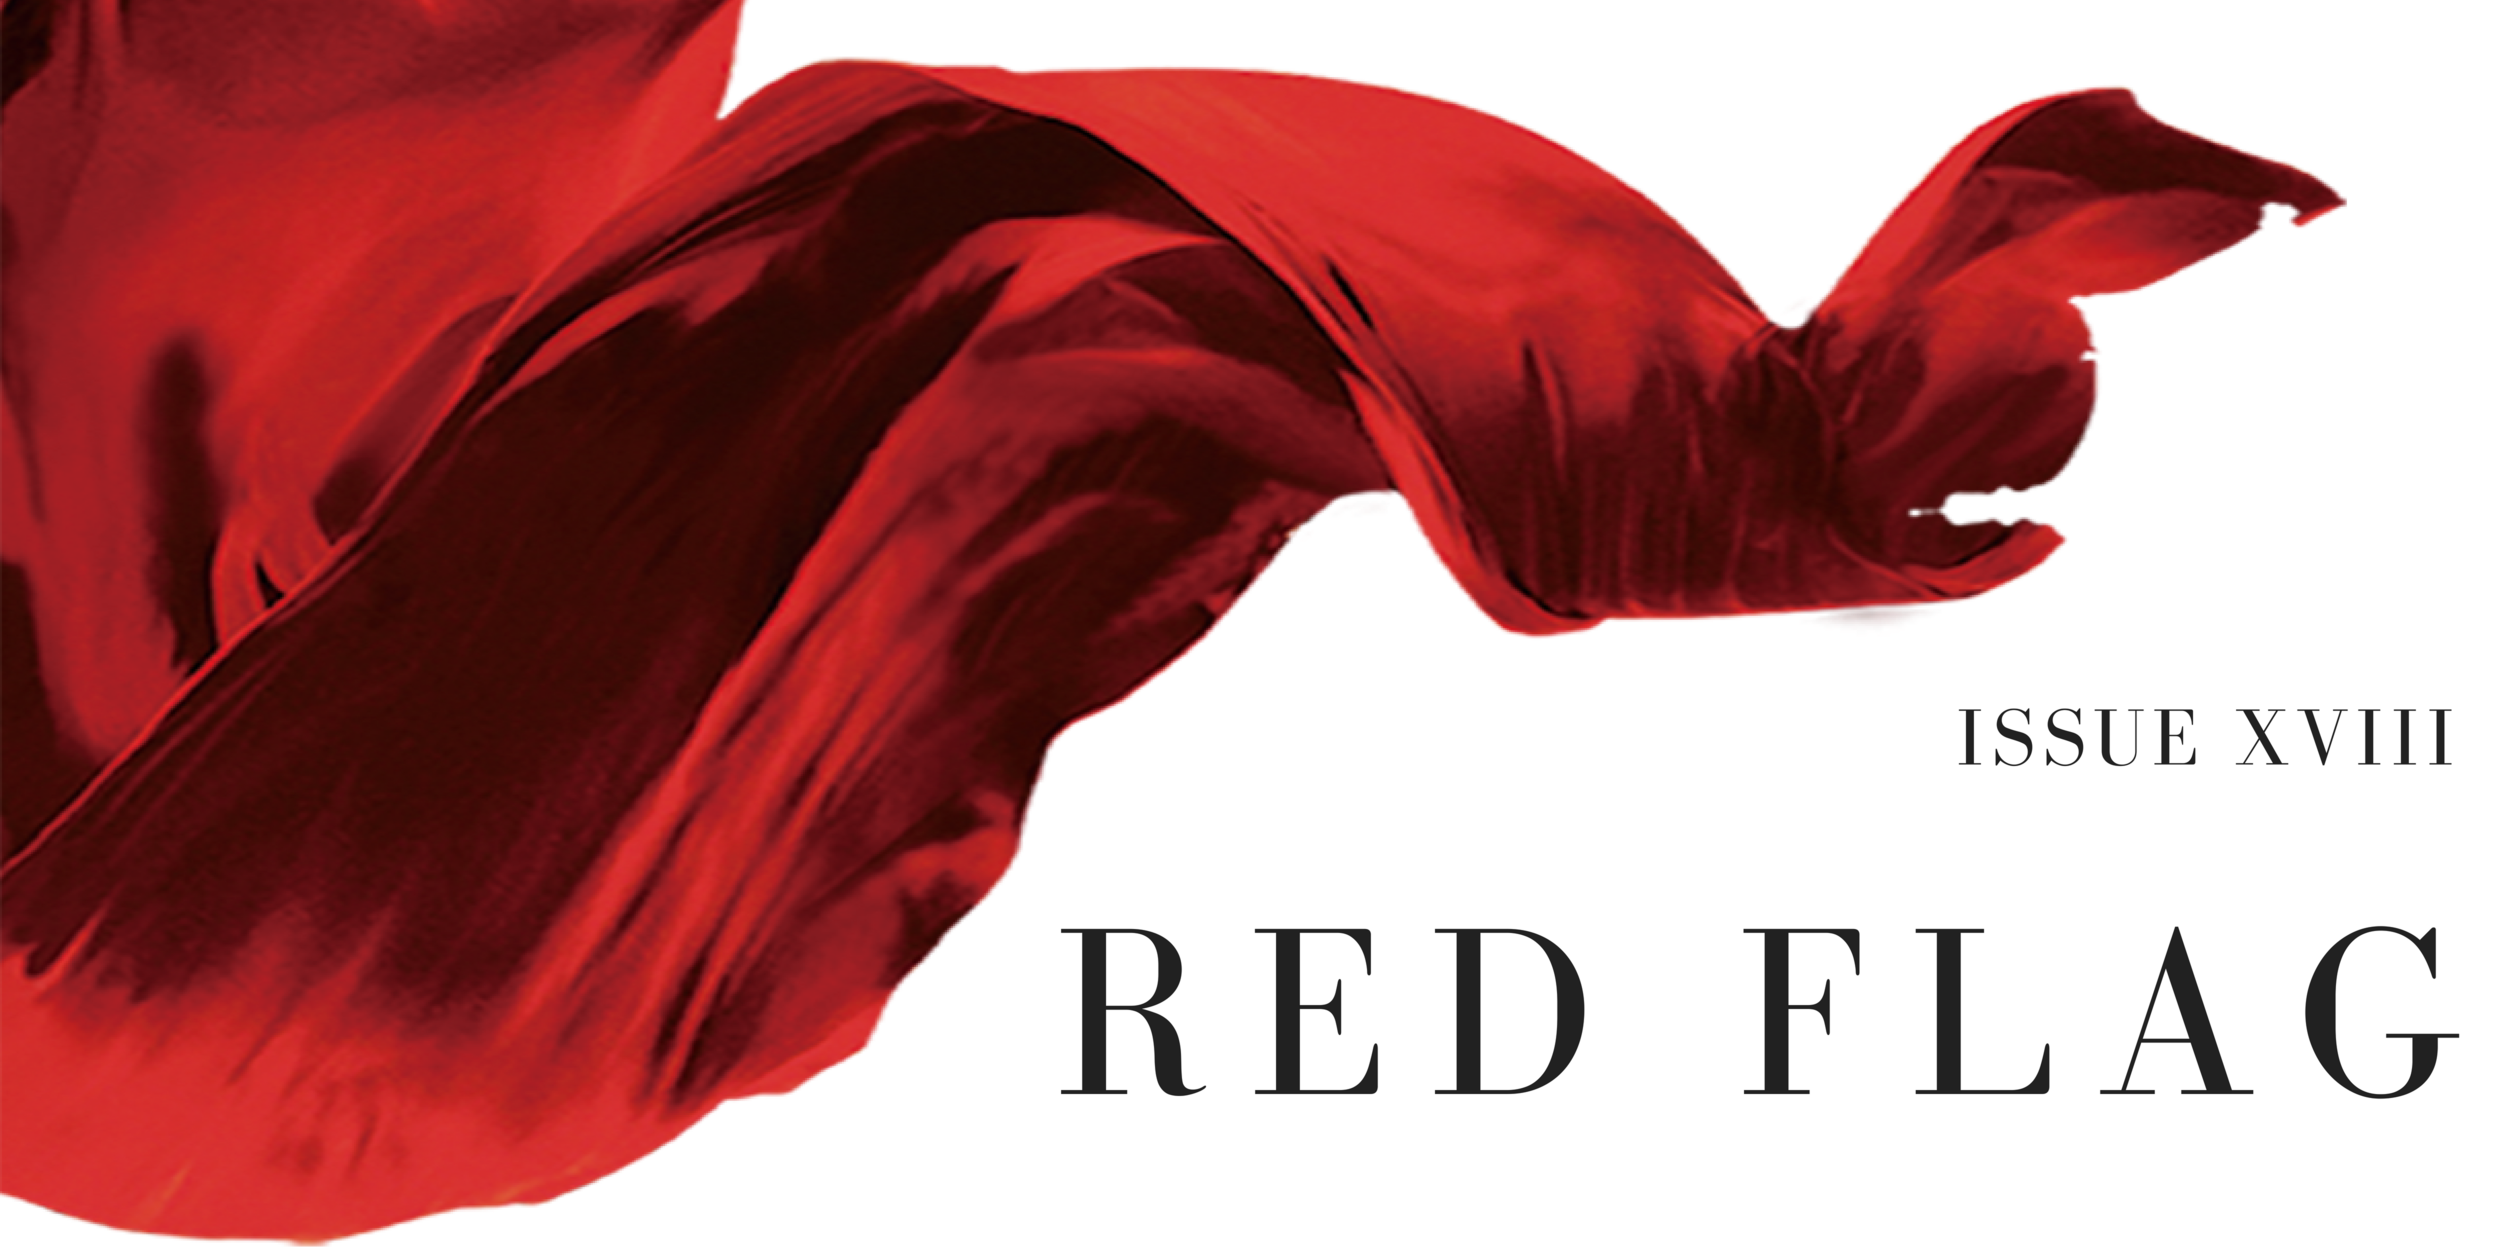 Issue XVIII - Red Flag - Cover.png